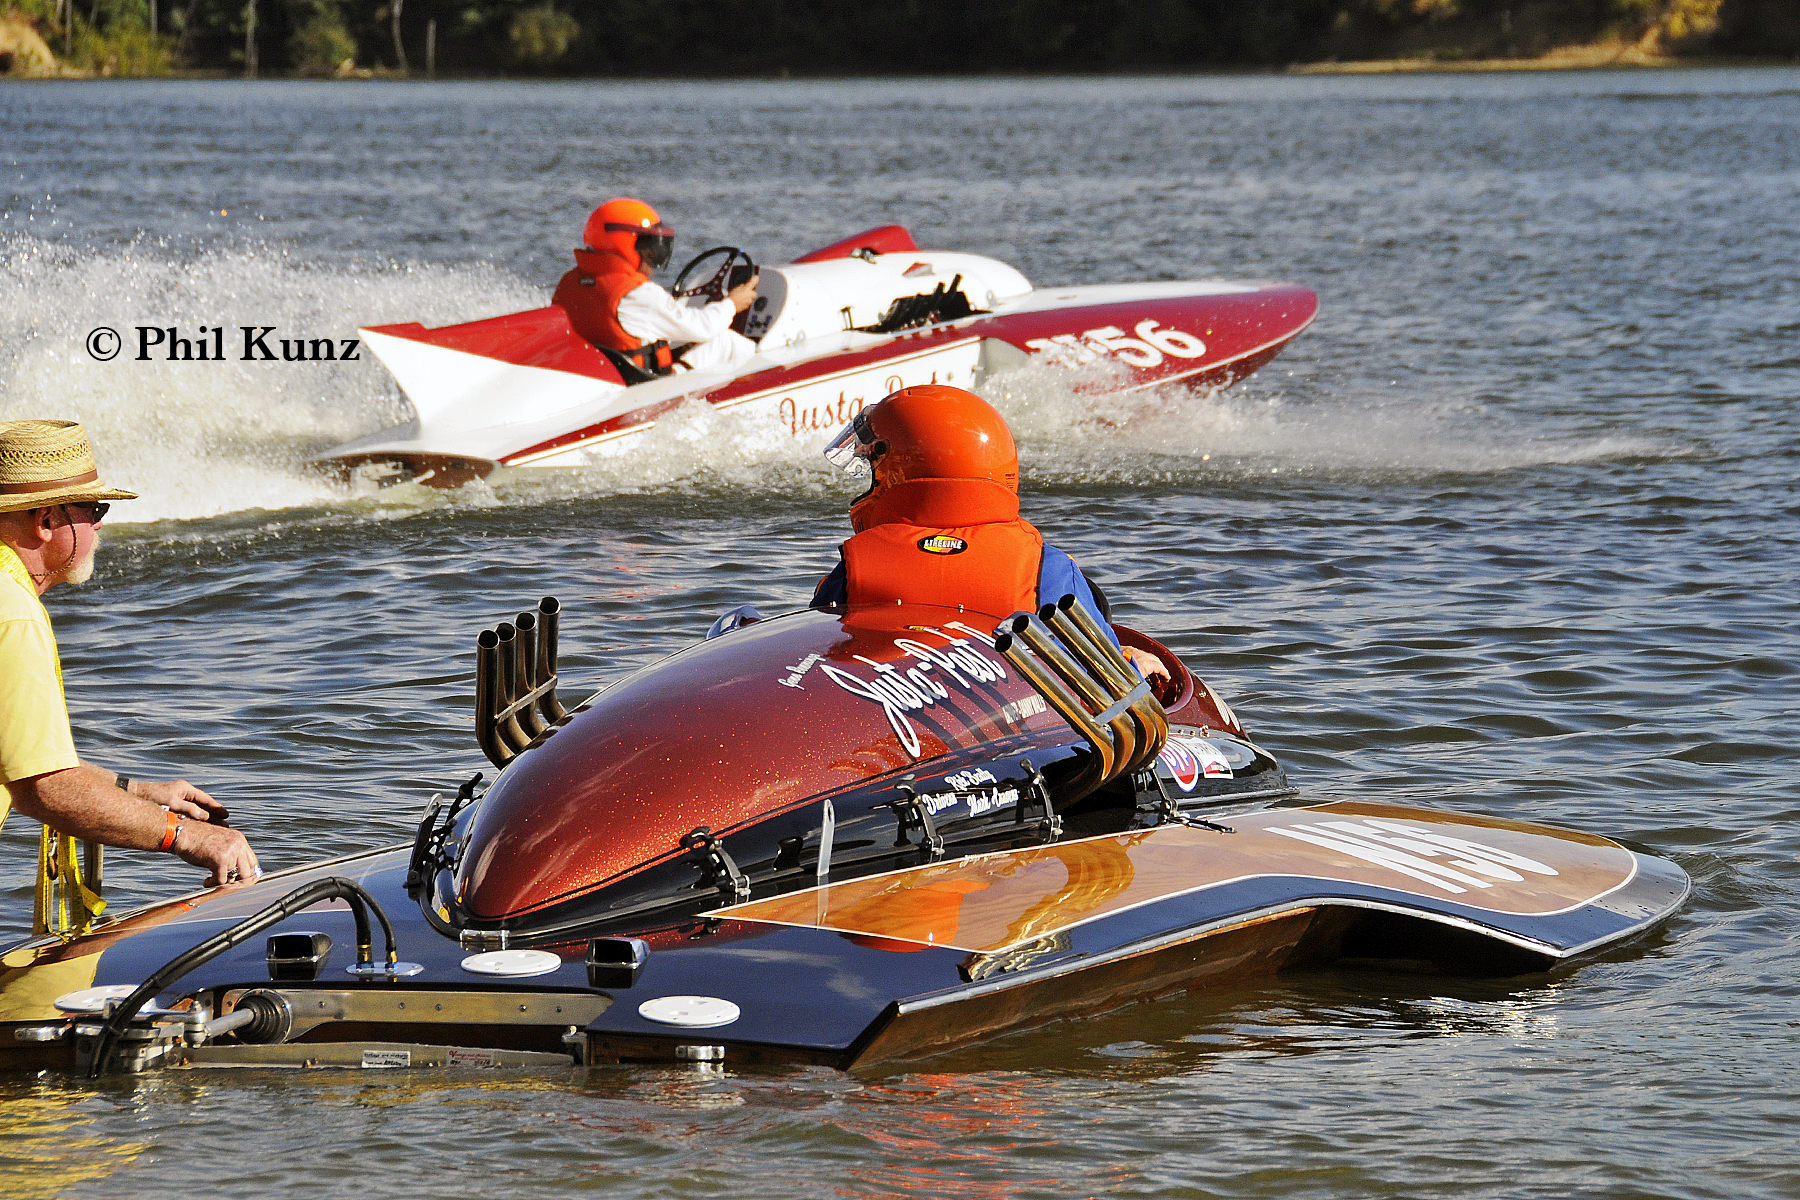 Dedicated to inboard, limited-class hydroplanes